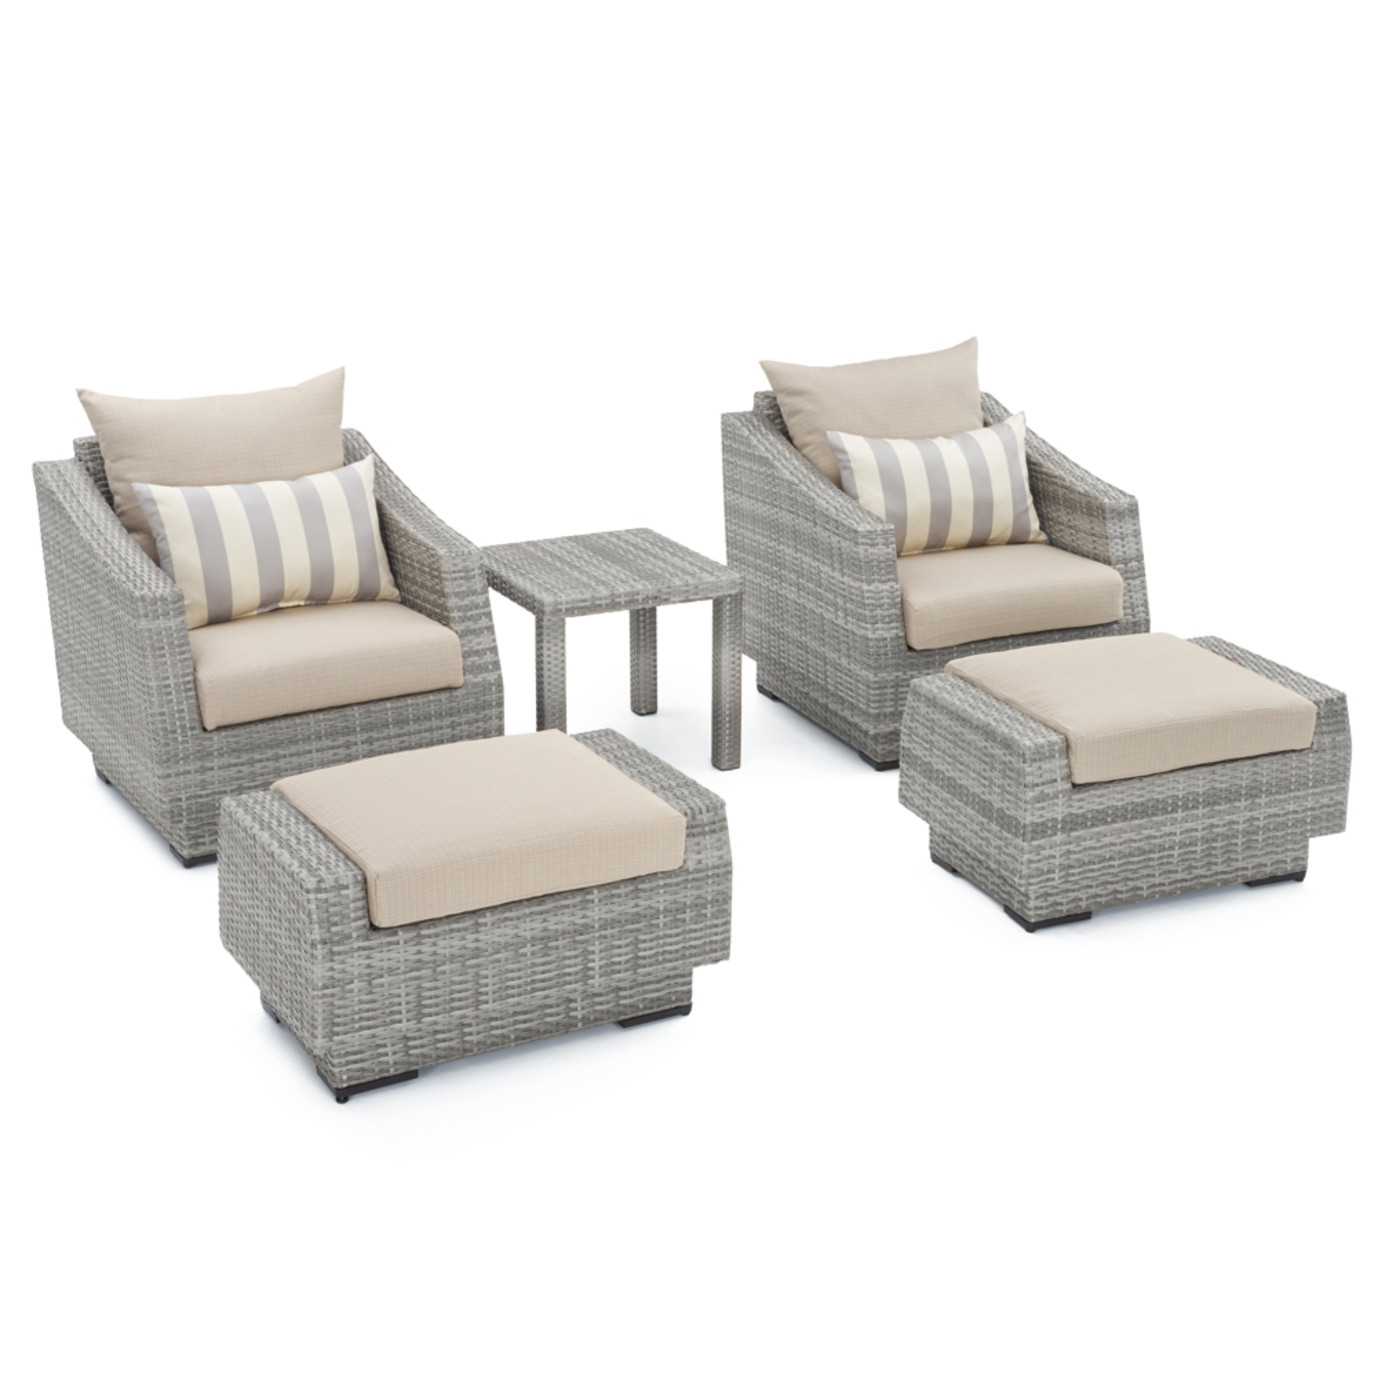 ... Cannes™ 5pc Club Chair and Ottoman Set - Slate Grey ... - Cannes 5pc Club Chair And Ottoman Set - Slate Grey RST Brands